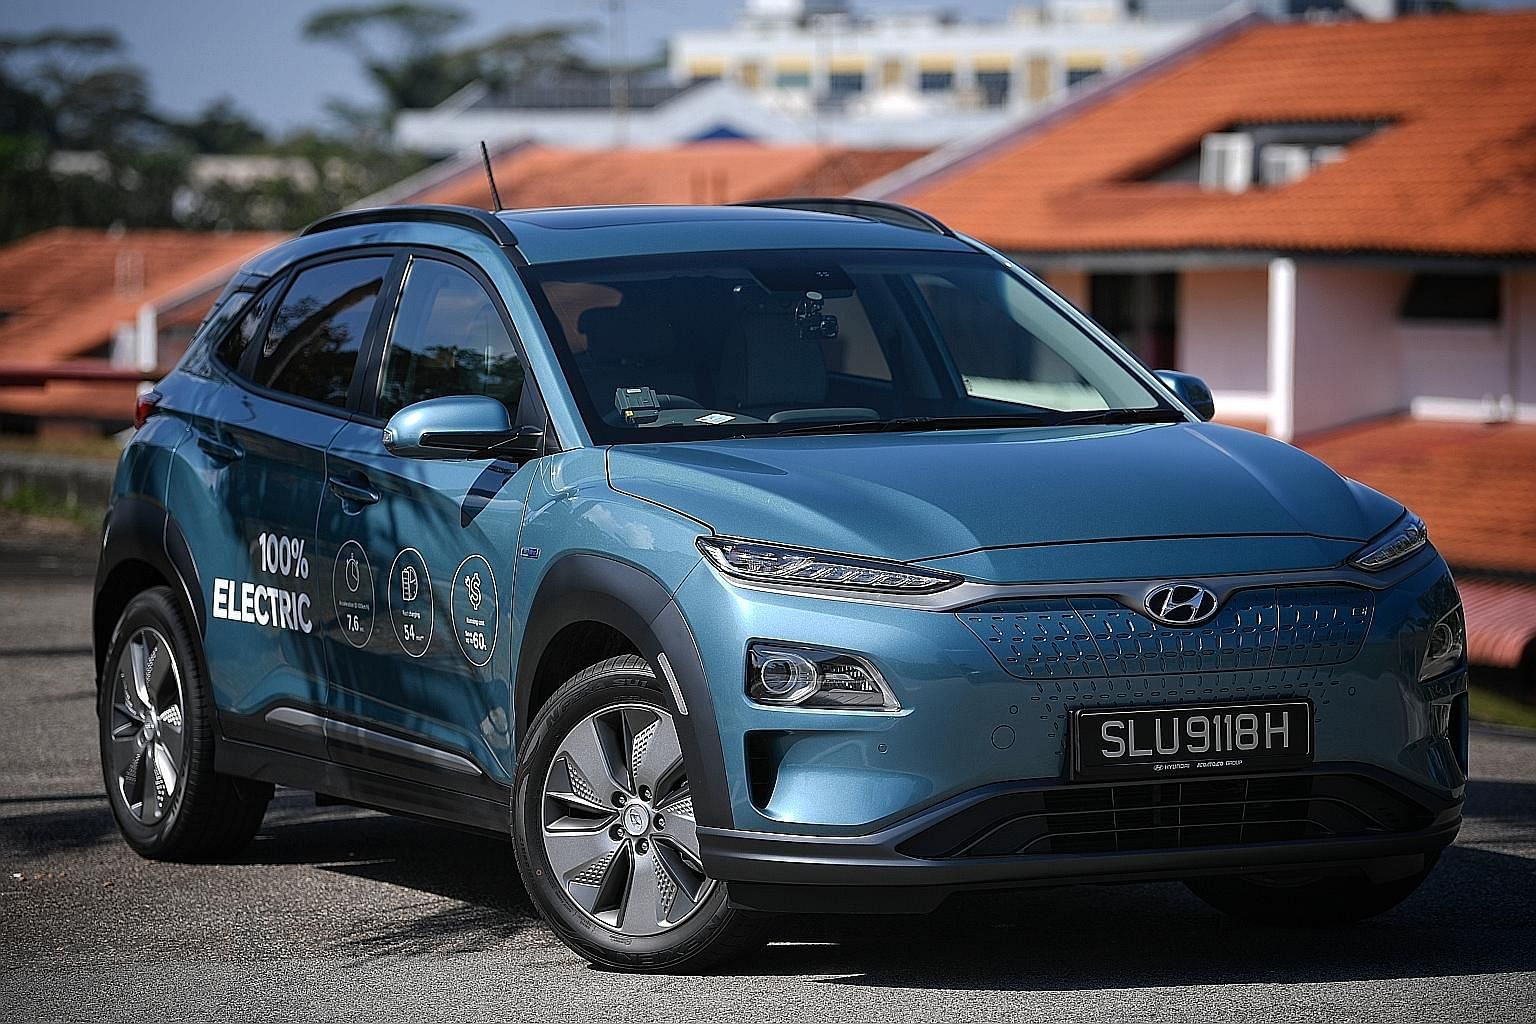 The Hyundai Kona Electric looks more chic than the engine-powered Kona, with its grille-less front, special wheels and two-tone paintwork.